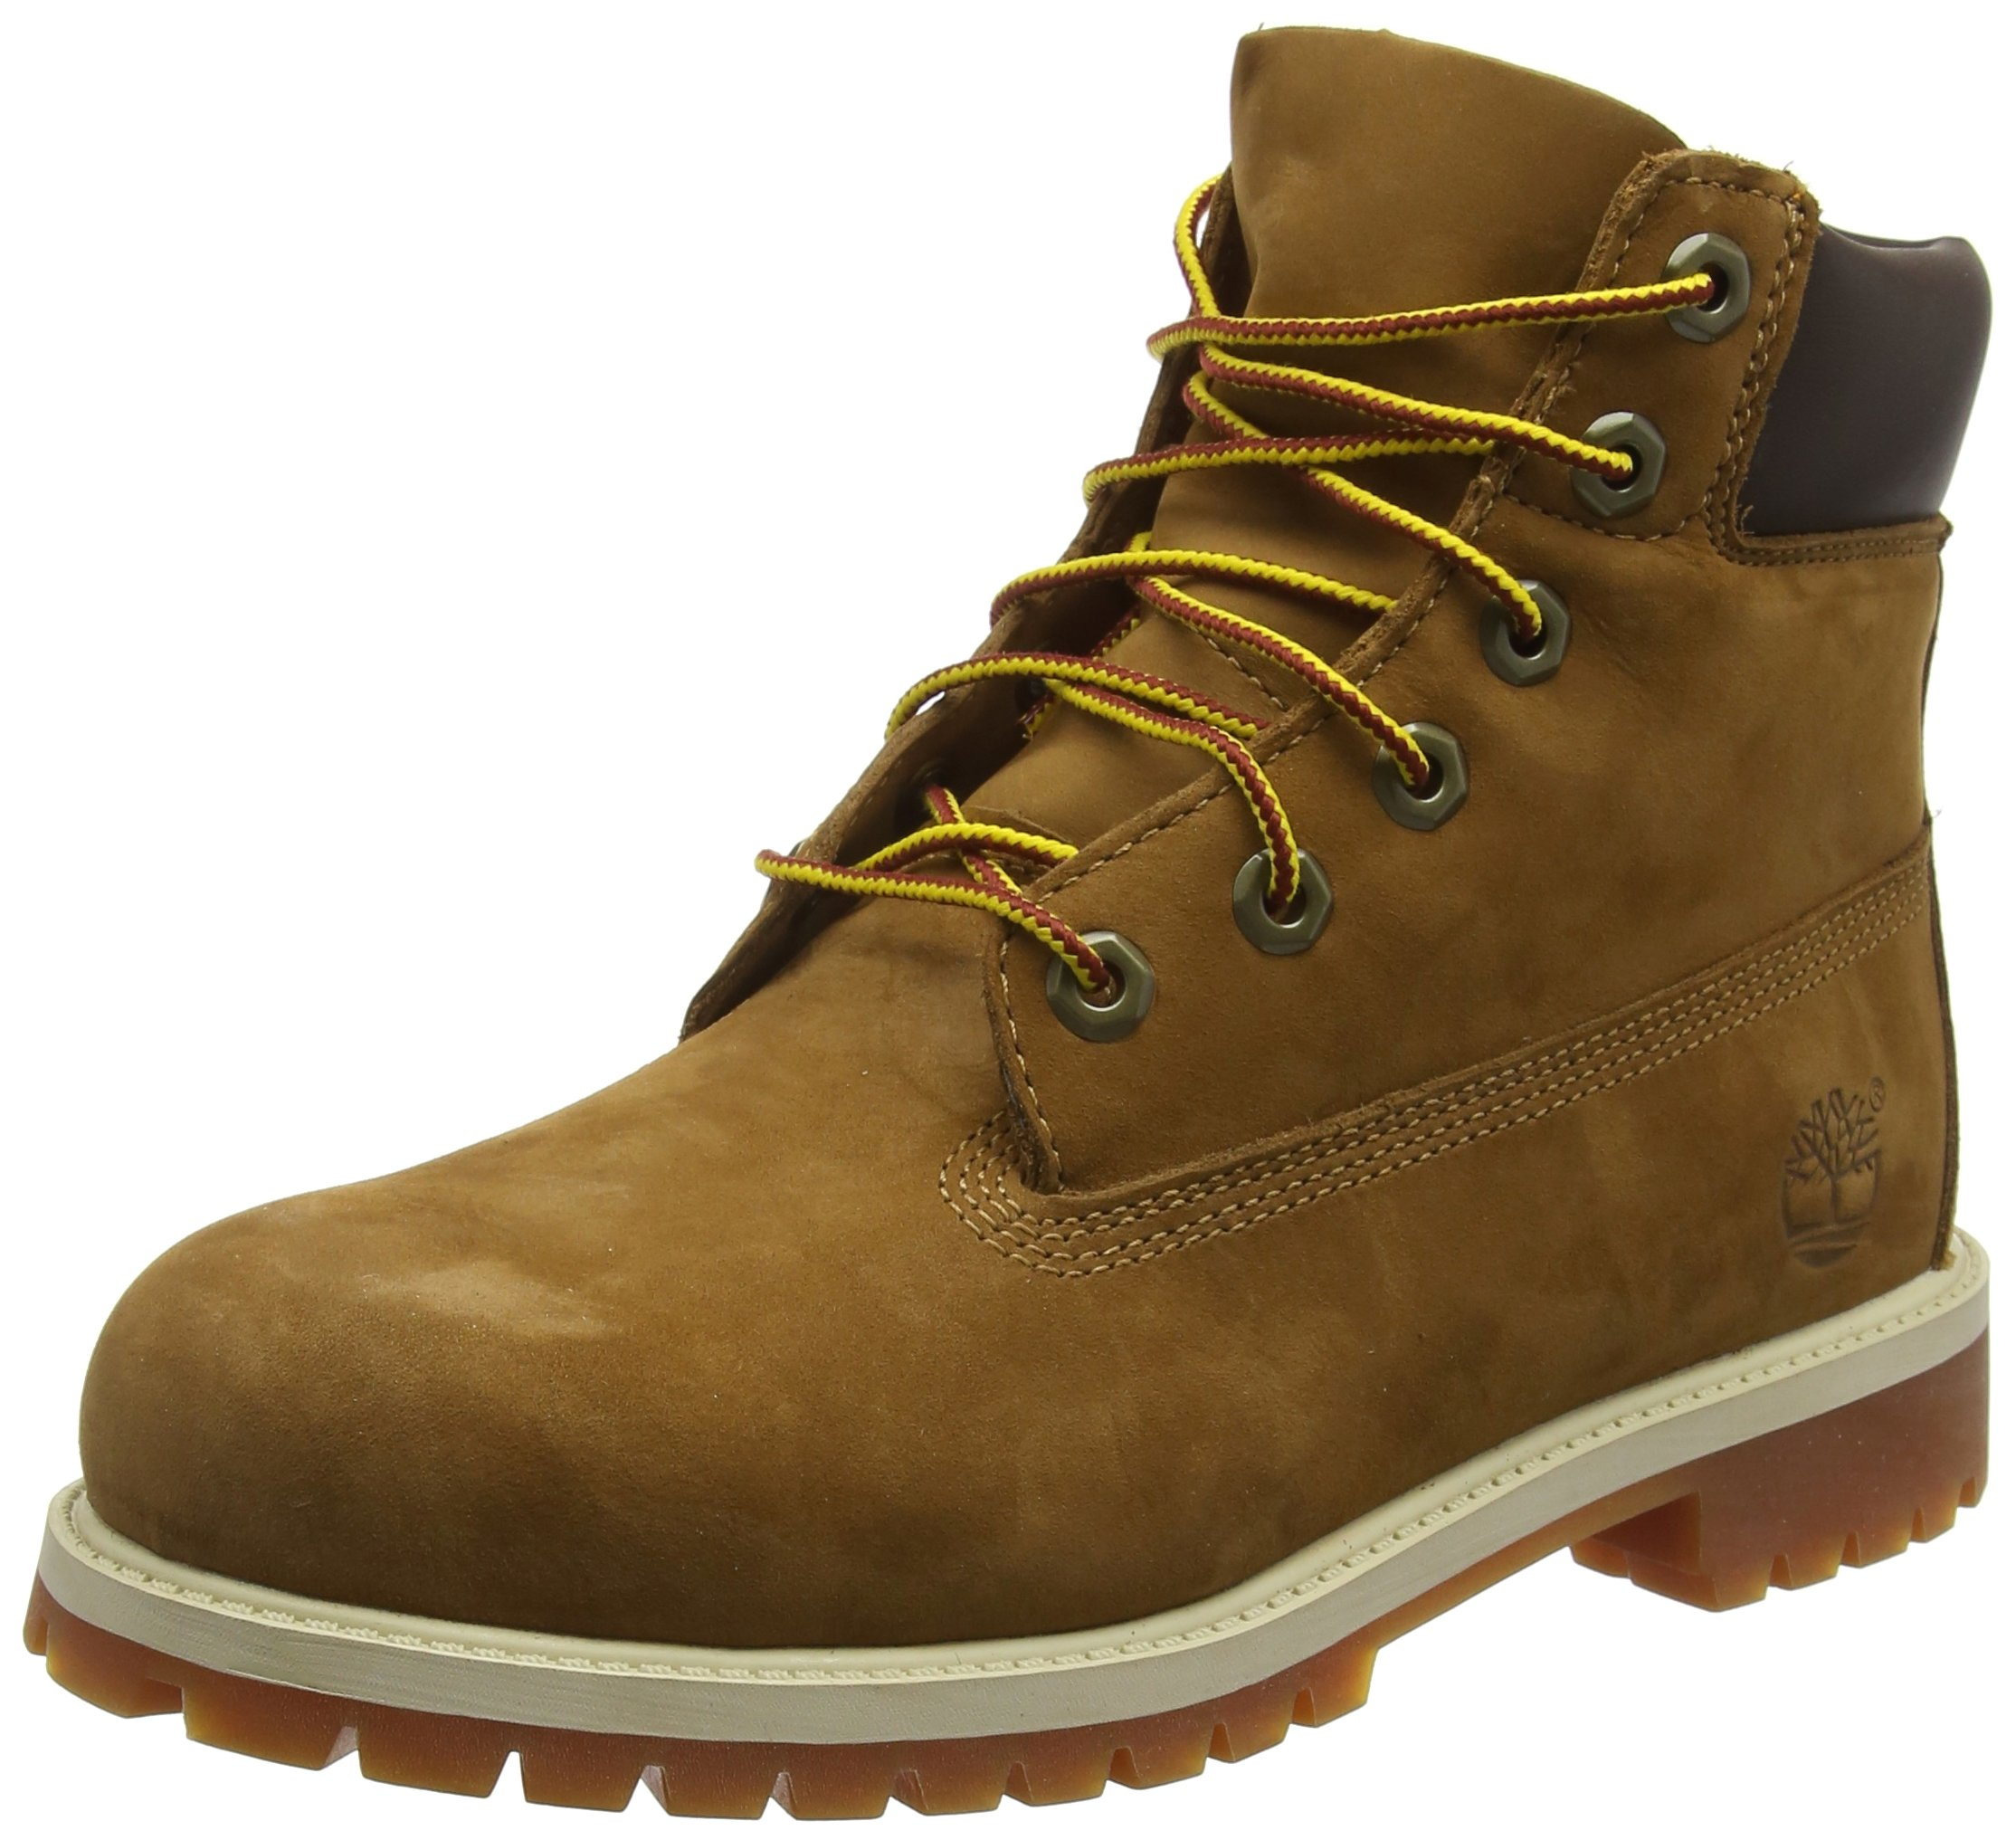 Timberland 6'' C12907 Premium Waterproof Boot,Rust Nubuck/Honey,5 M US Big Kid